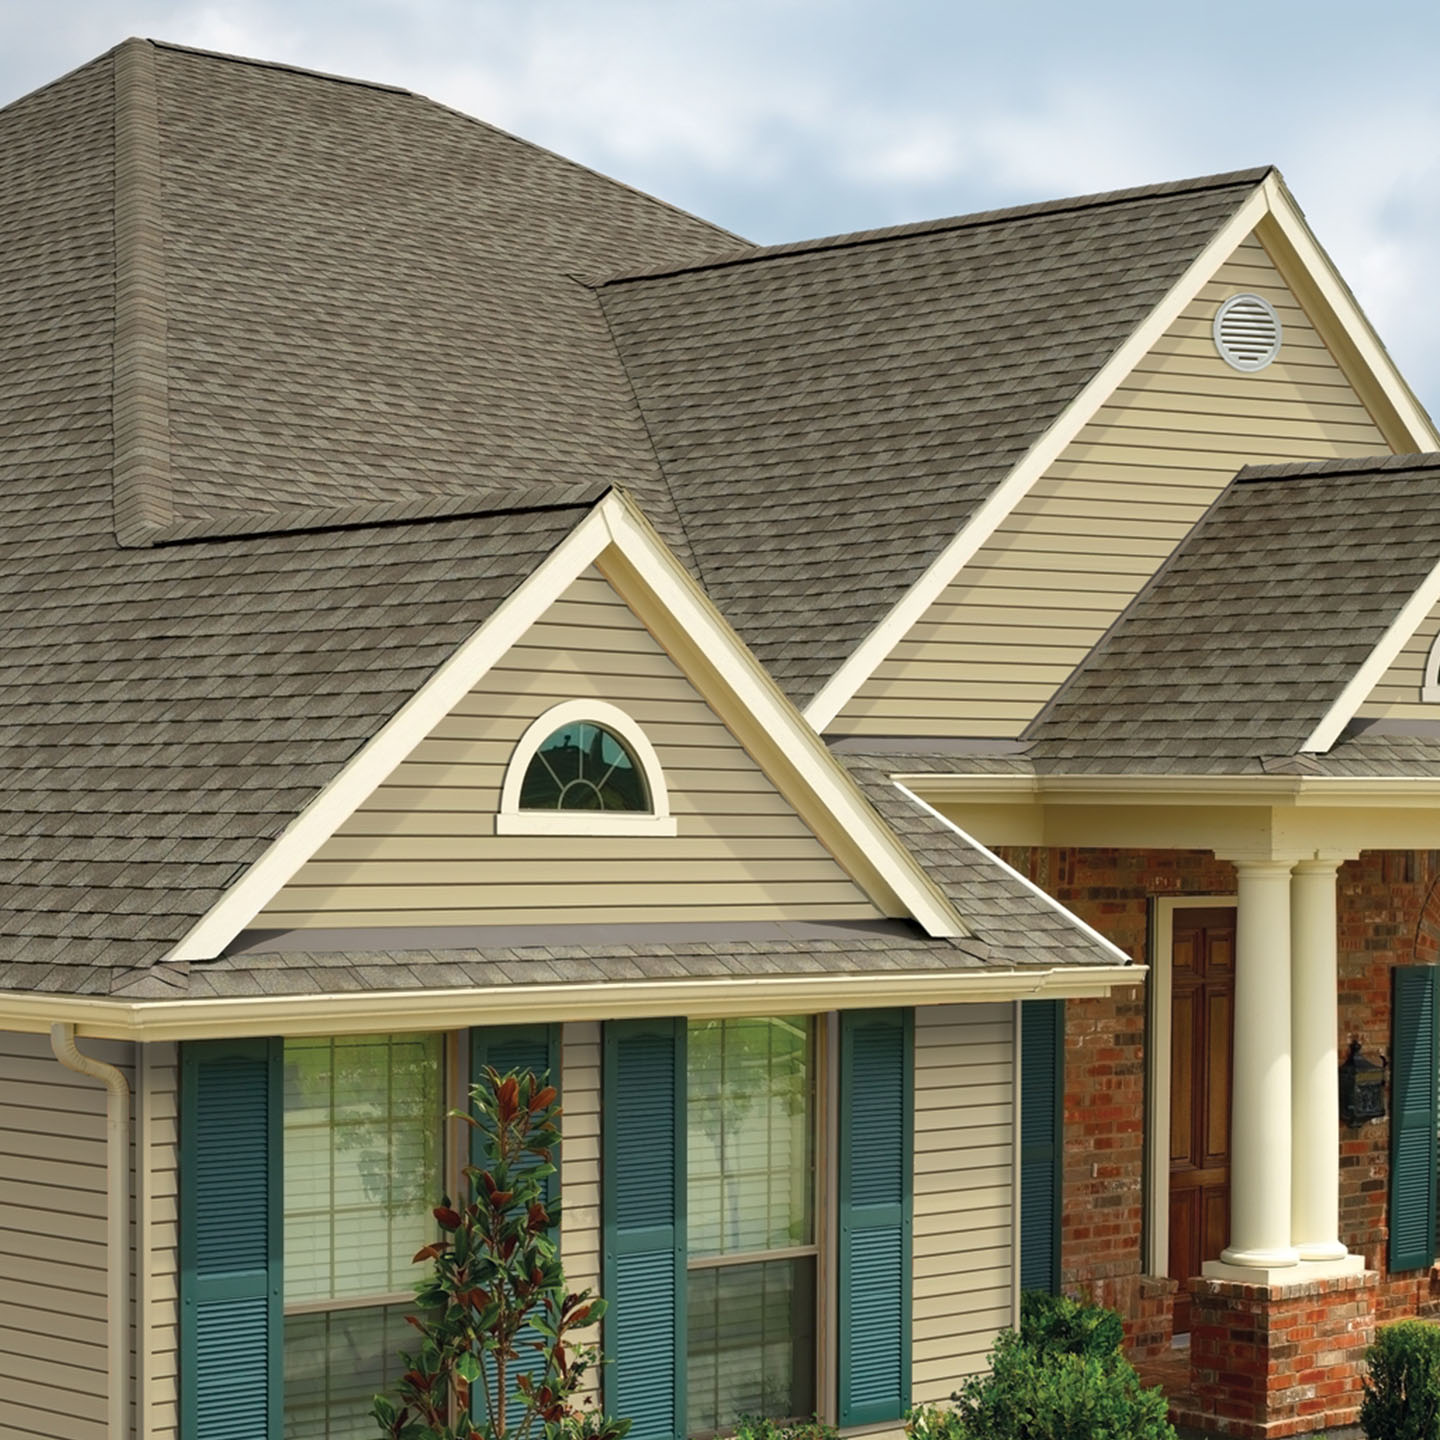 GAF's Timberline Natural Shadow Weathered Wood roof